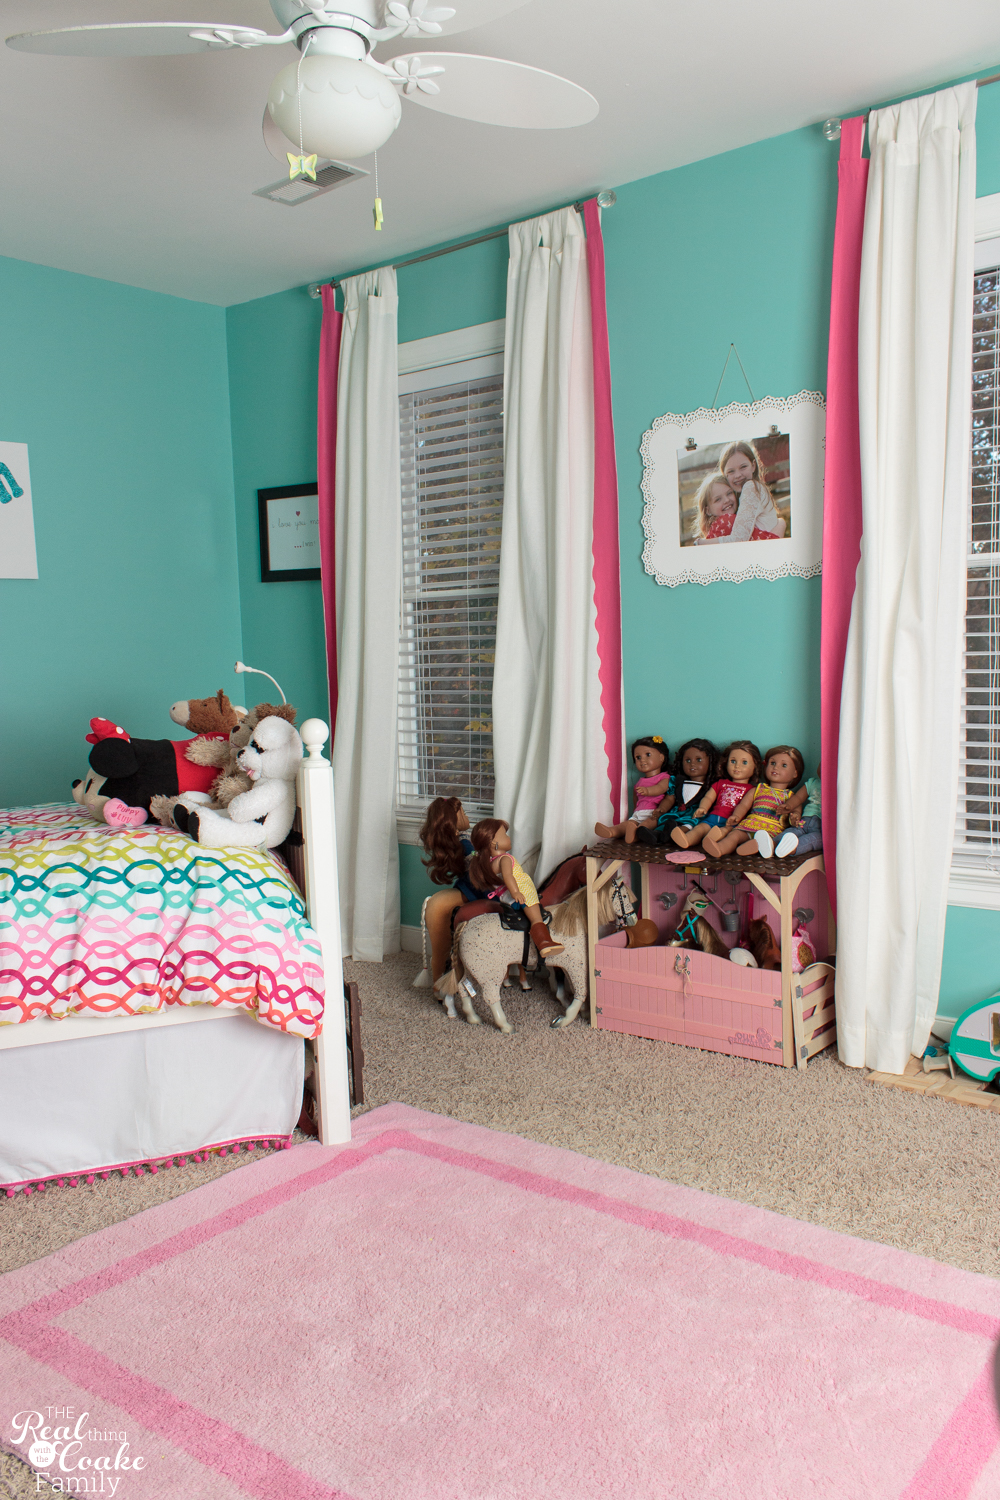 Cute Bedroom Ideas The Real Thing With The Coake Family